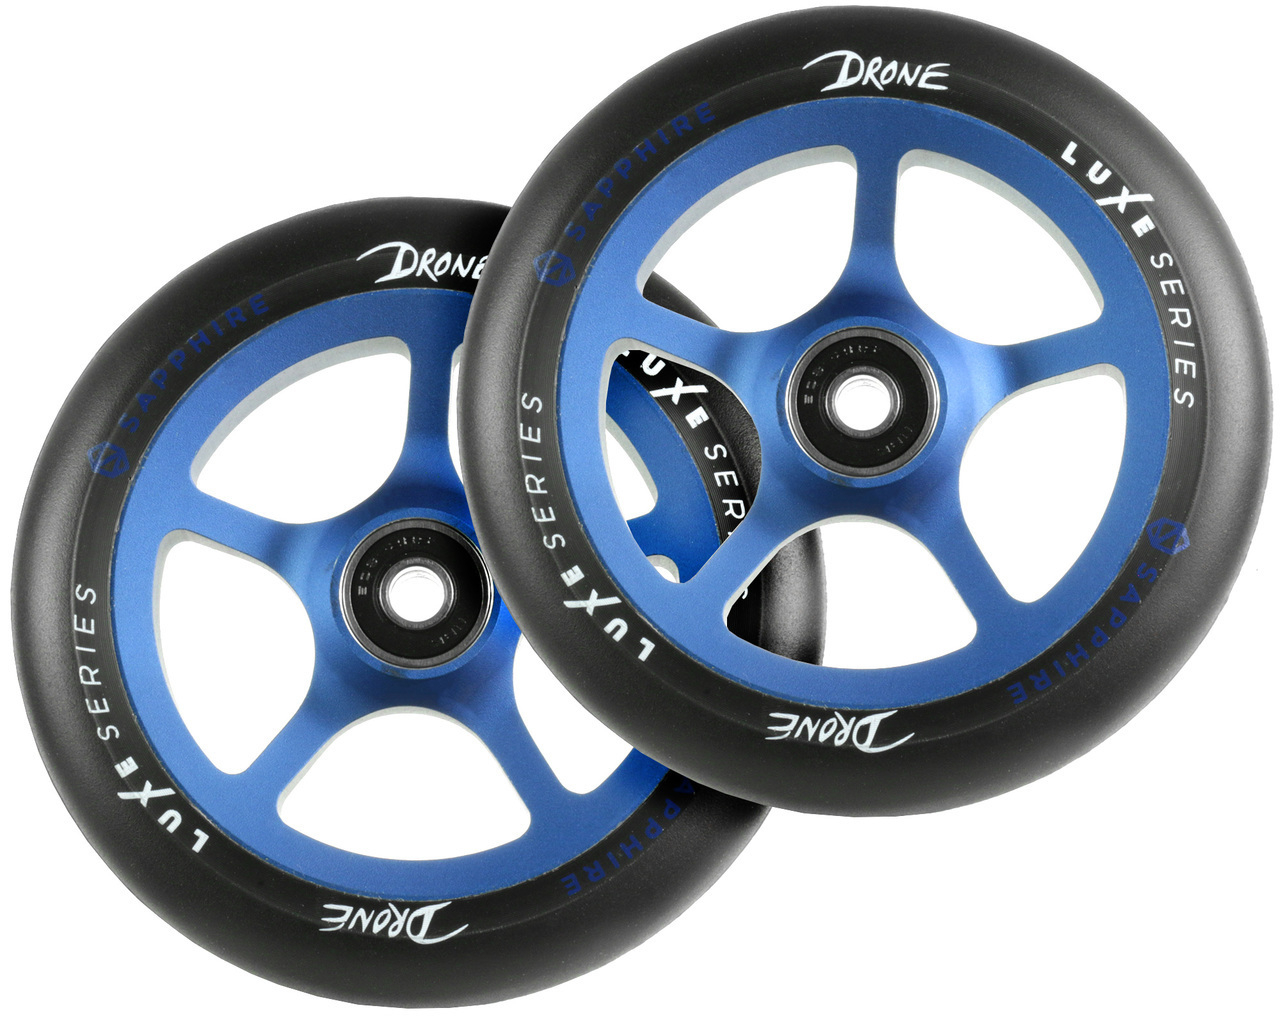 Drone Luxe Series 110mm Wheel